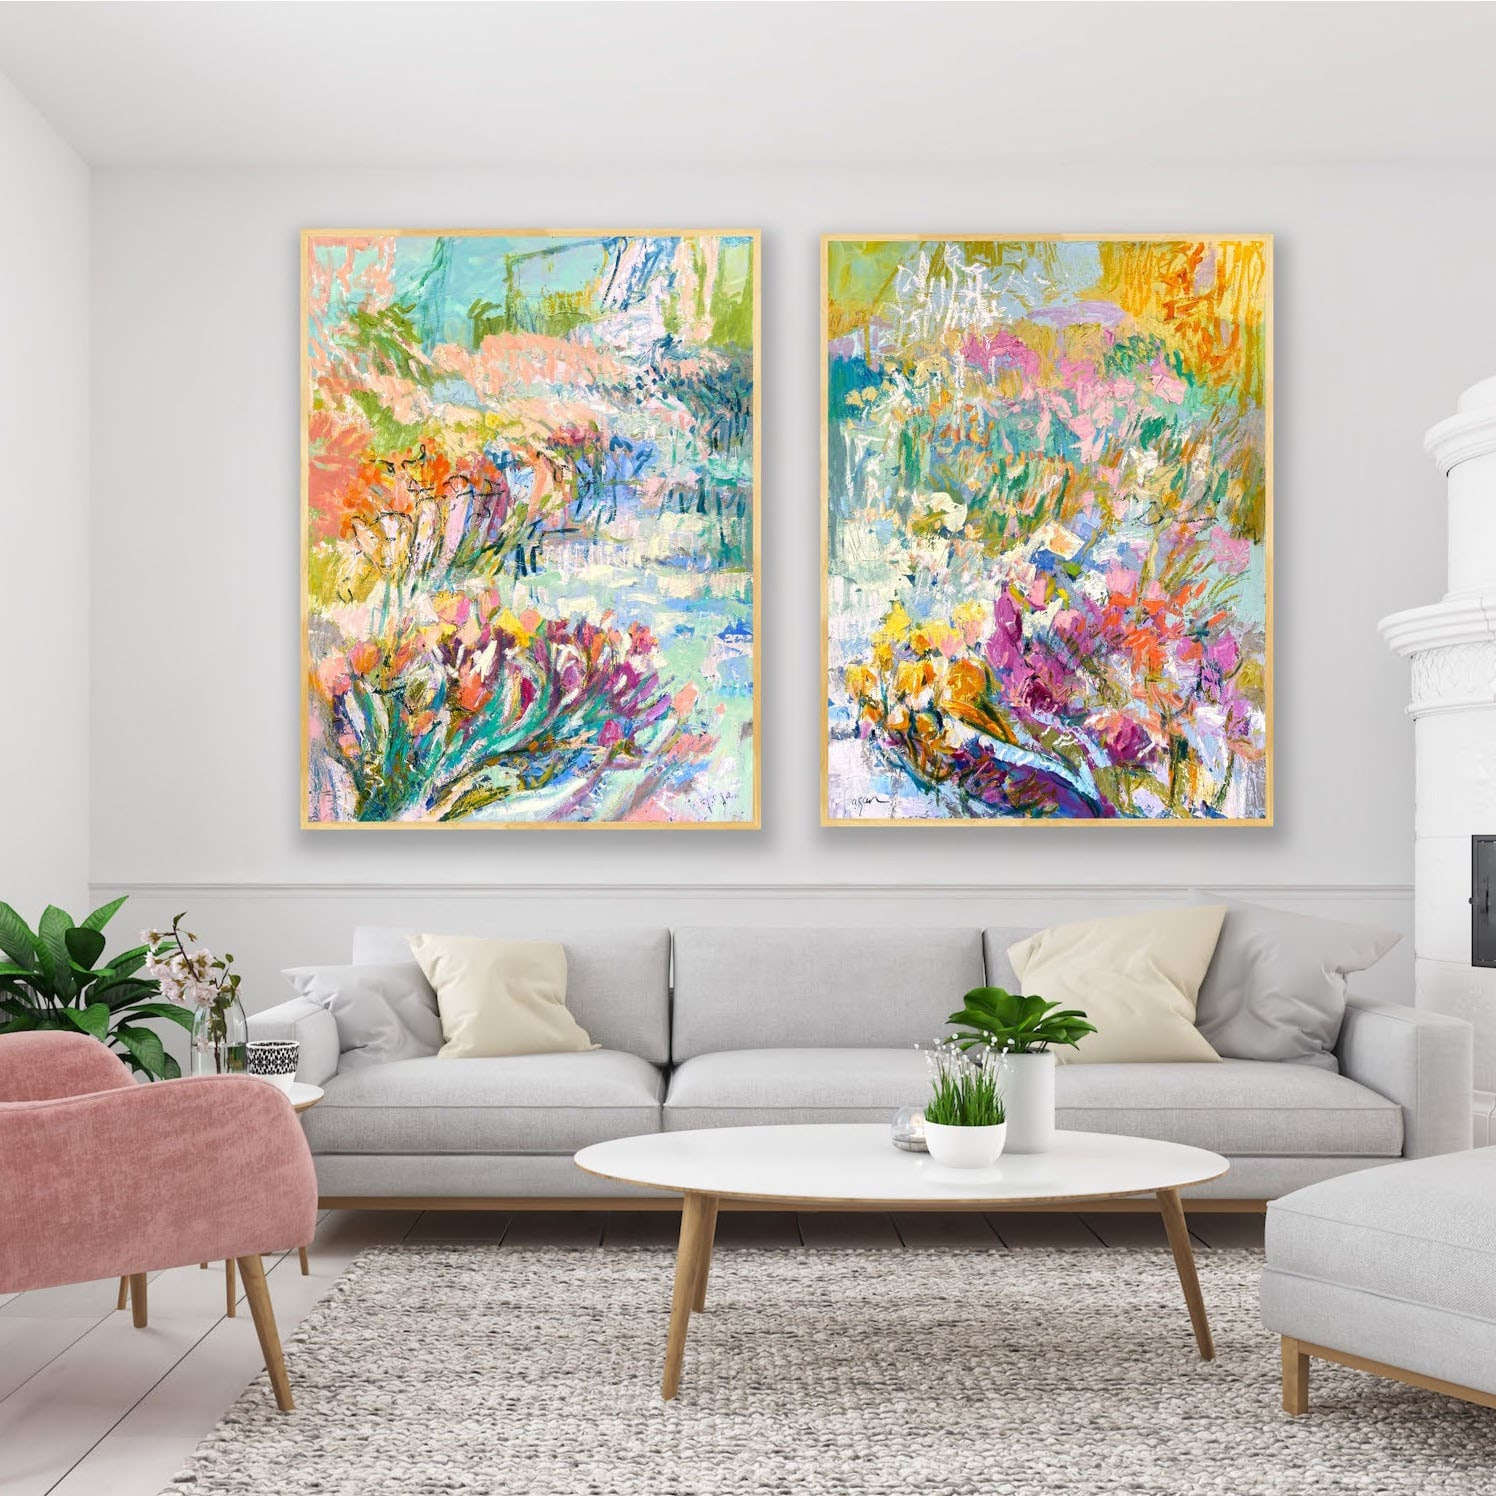 <div class='title'>           Fuse Spirit with Tangerine Dreams         </div>                 <div class='description'>           Joyful Morning and Heavenly Day diptych         </div>